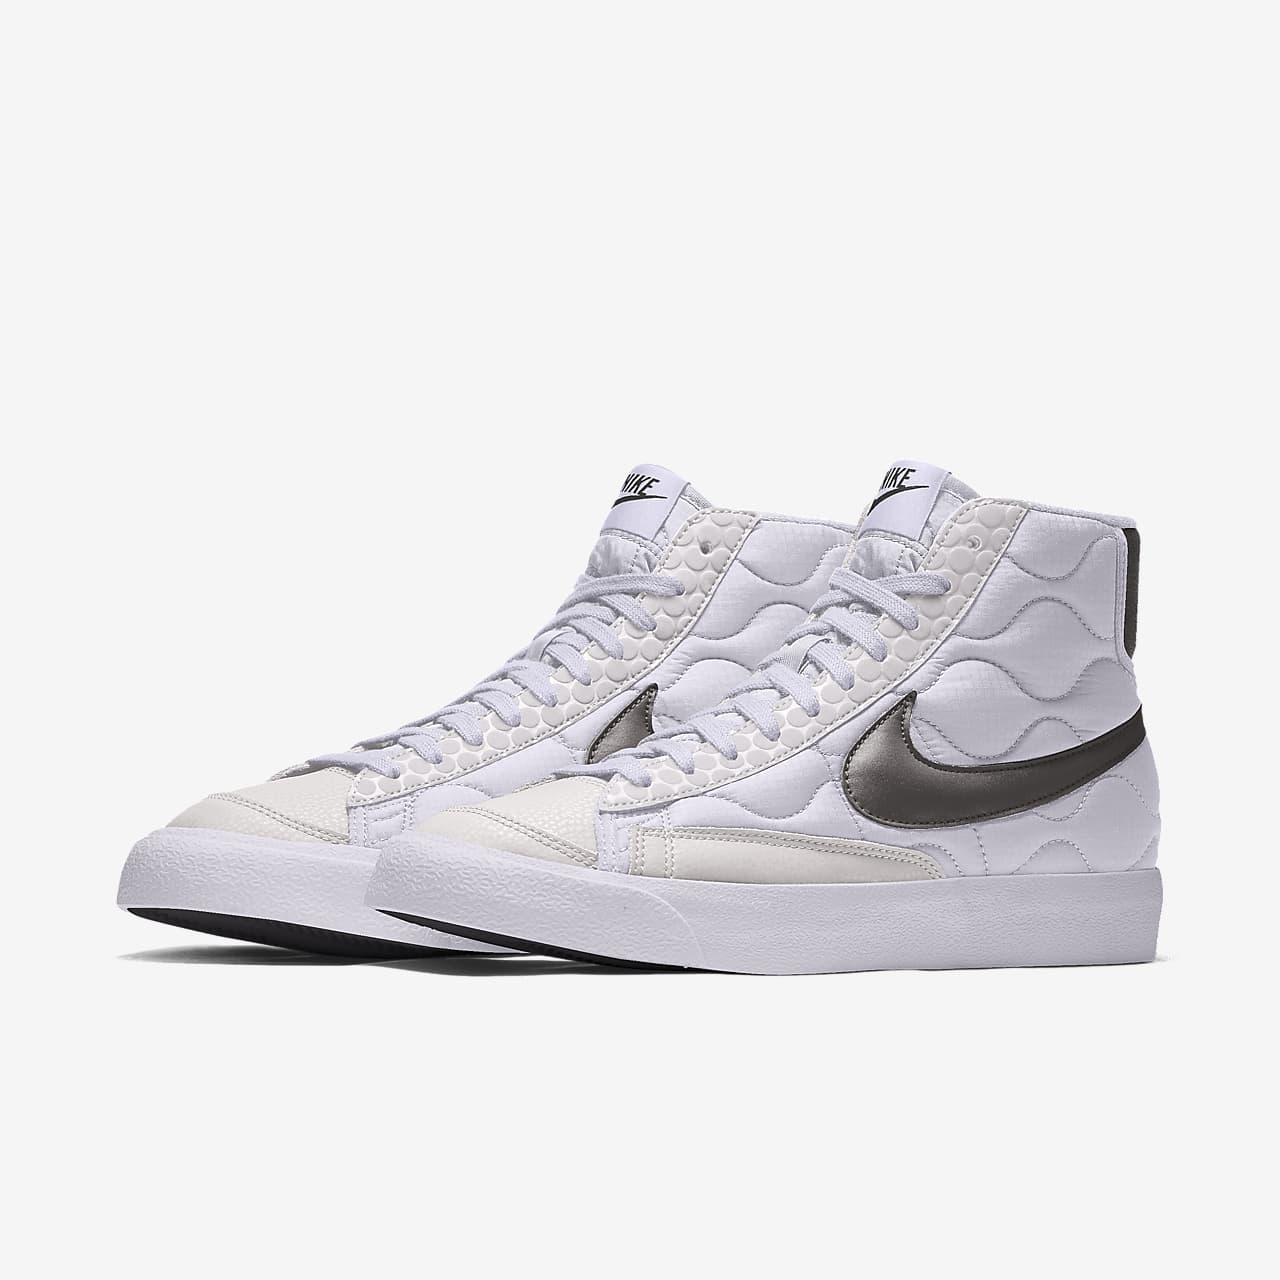 Nike Blazer Mid Vintage '77 3M™ By You Custom schoen